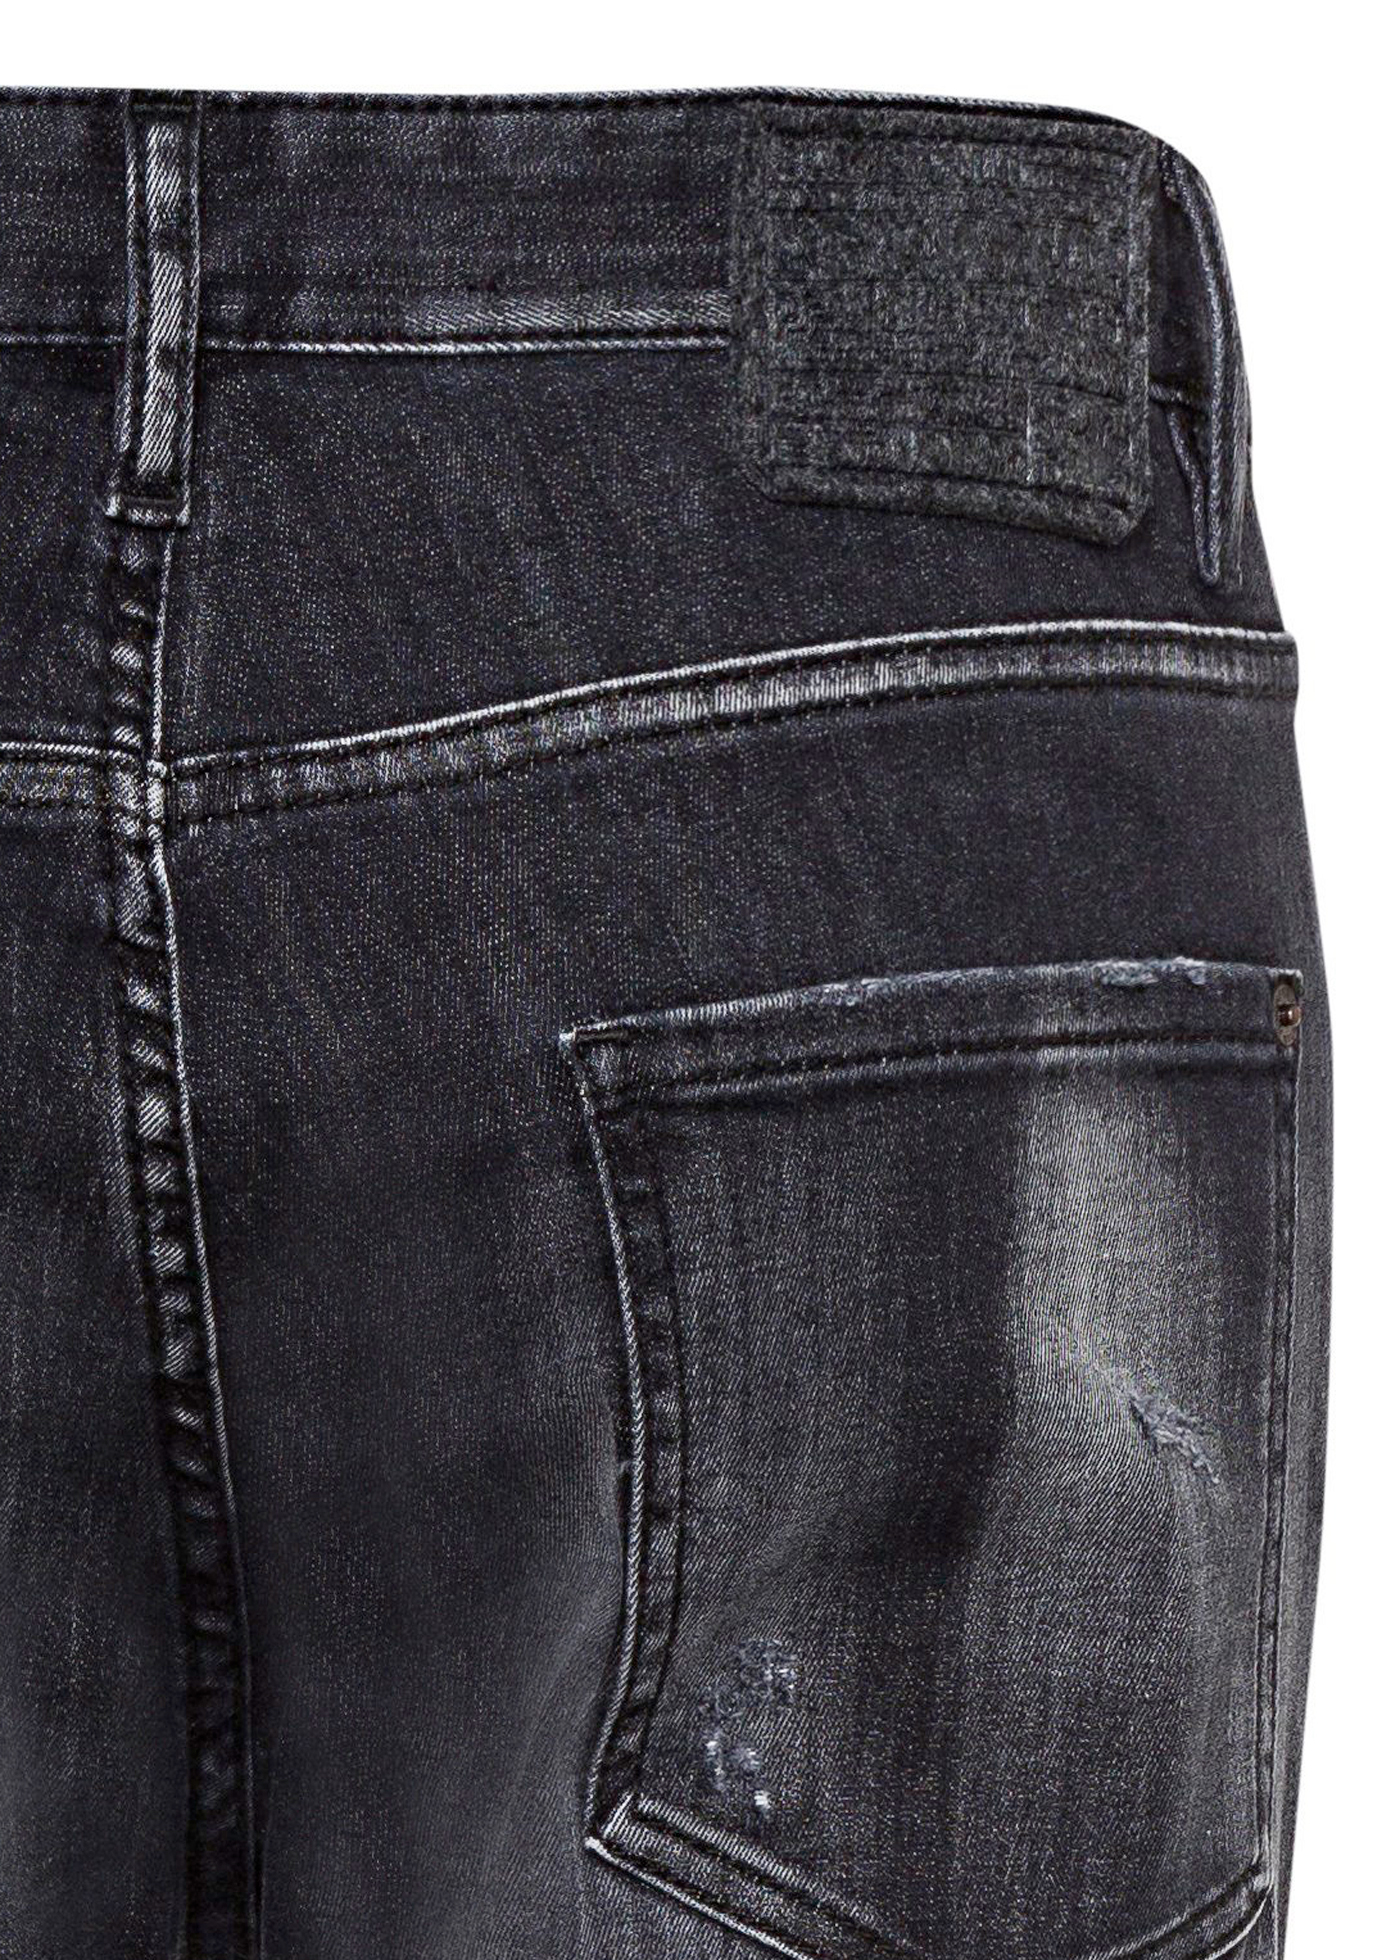 Relax Crotch Jeans image number 3